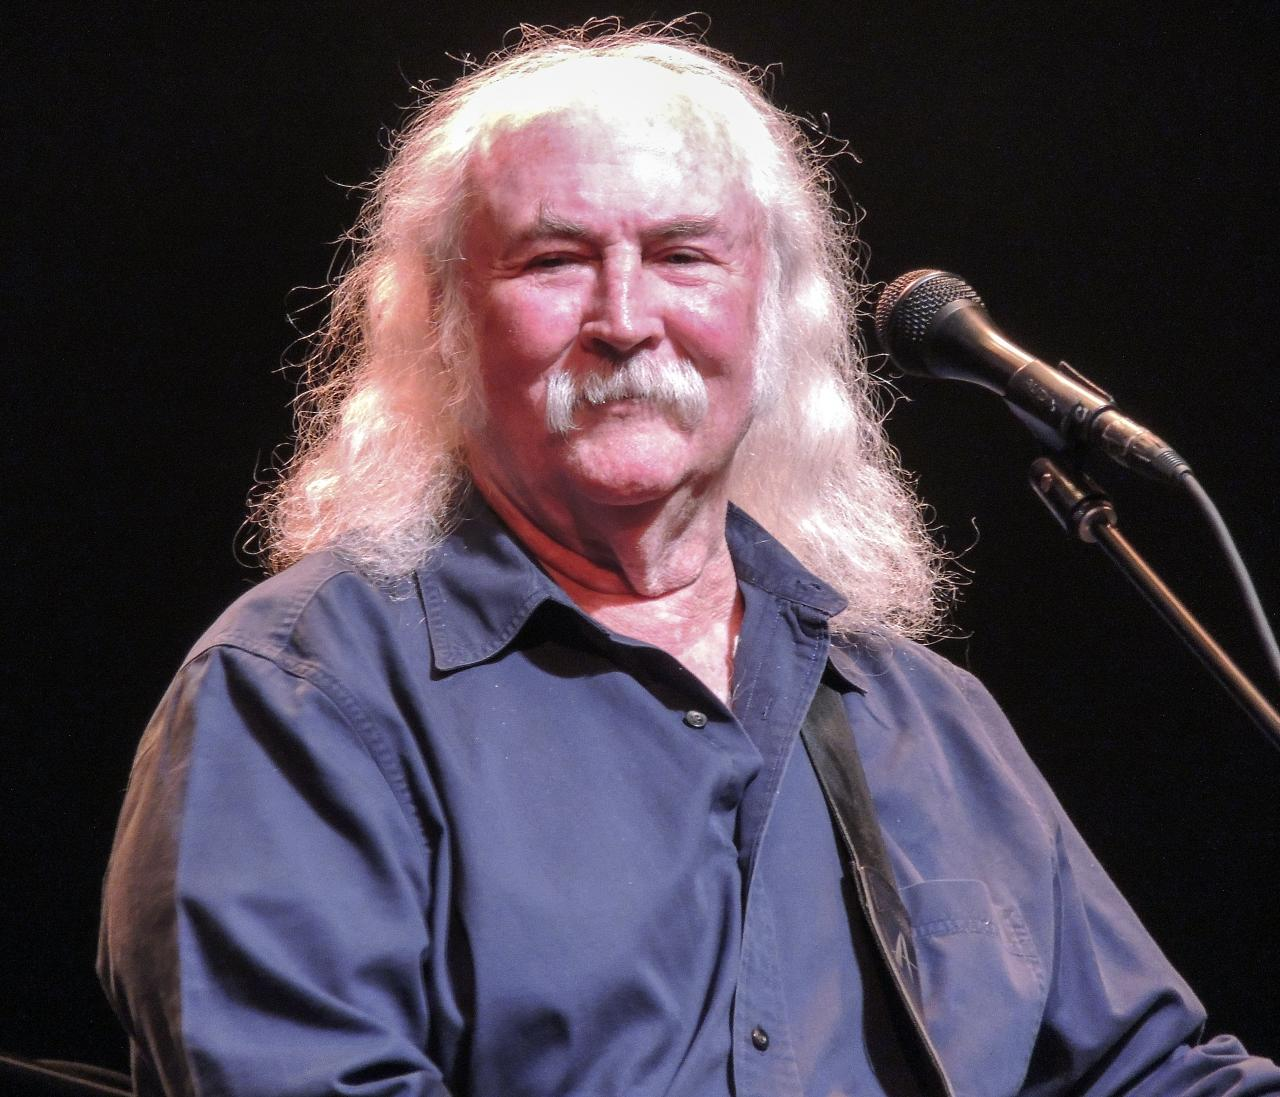 david crosby hook - photo #5